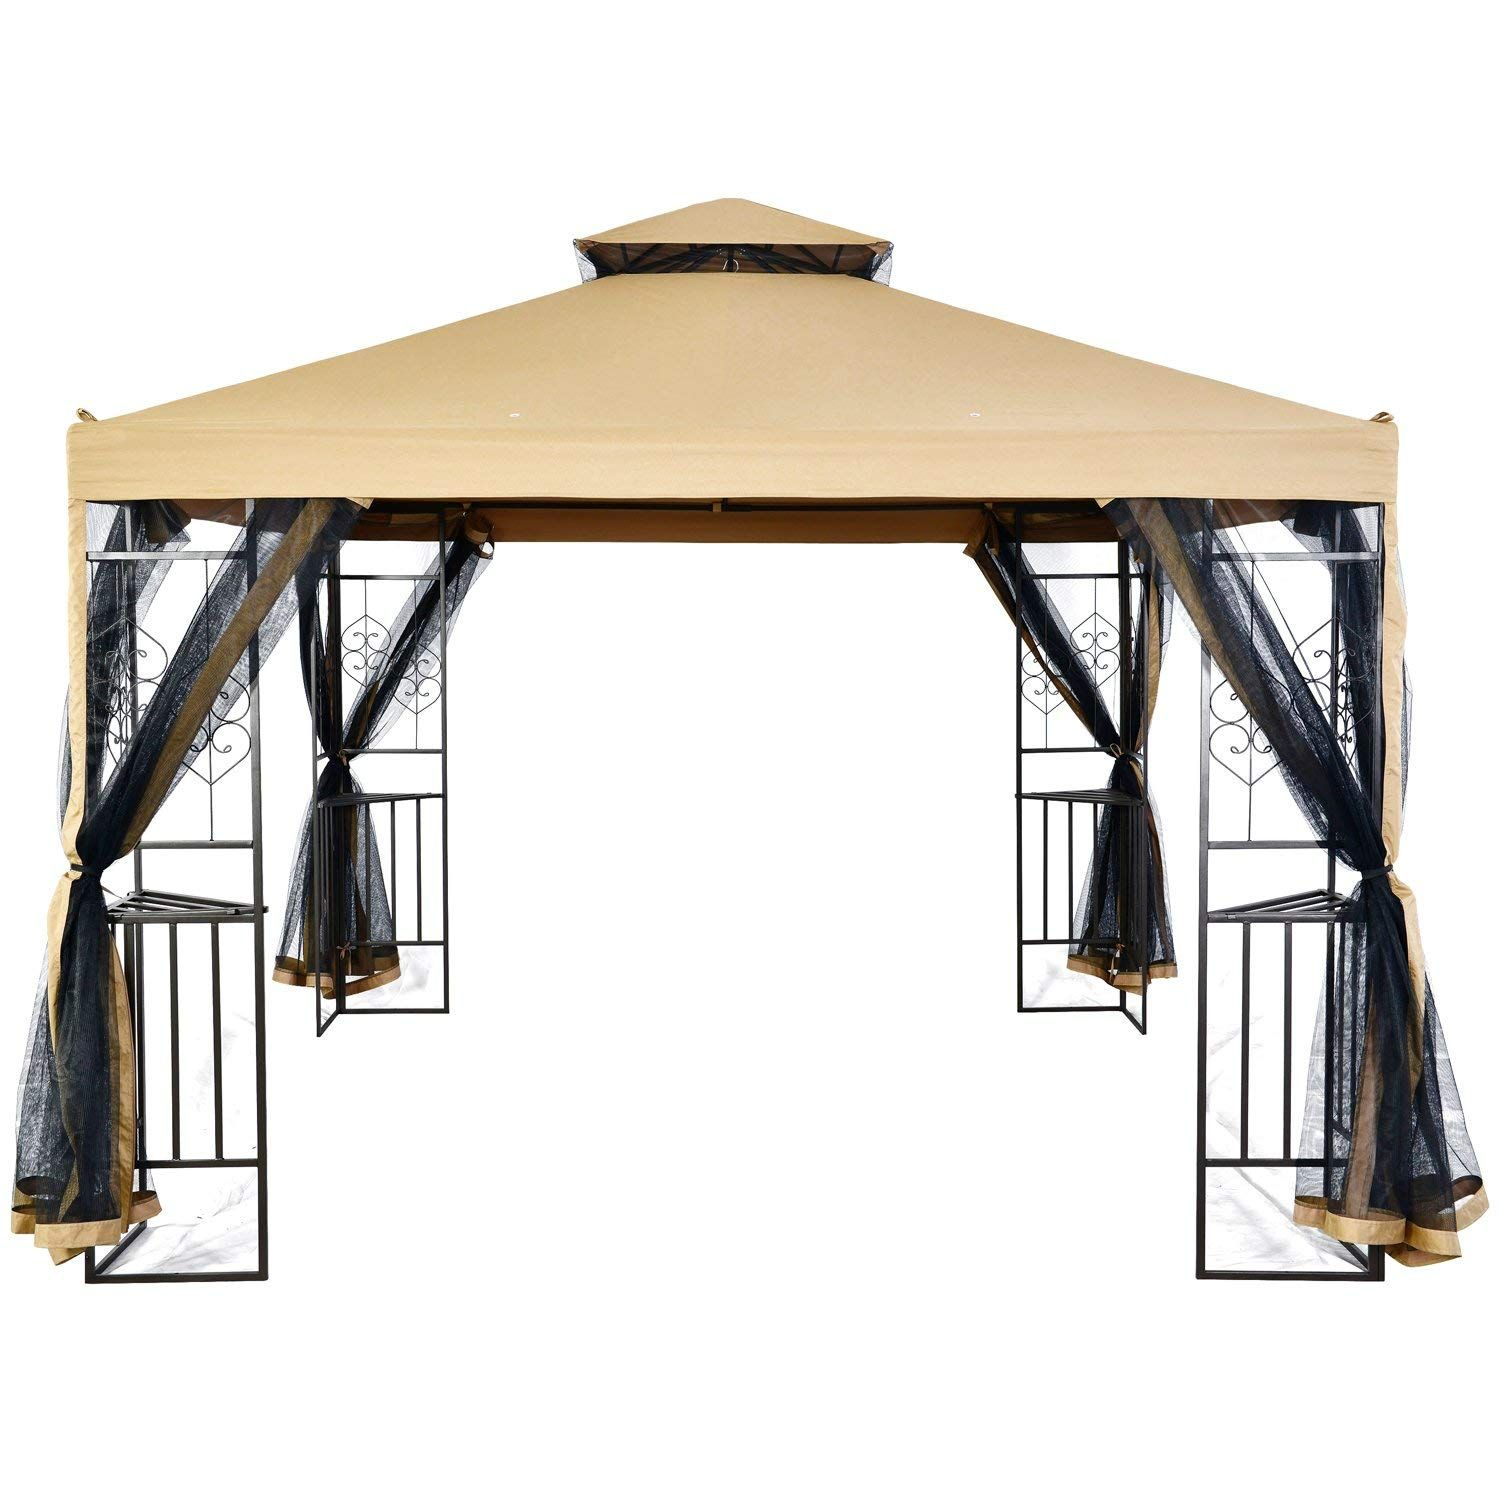 Lch 10 X 10 Ft Outdoor Gazebo 2 Tier Soft Top Canopy Heavy Duty Steel Frame Sun Shelter With Zippered Mosquito Netting Beige Outdoor Gazebos Gazebo Outdoor